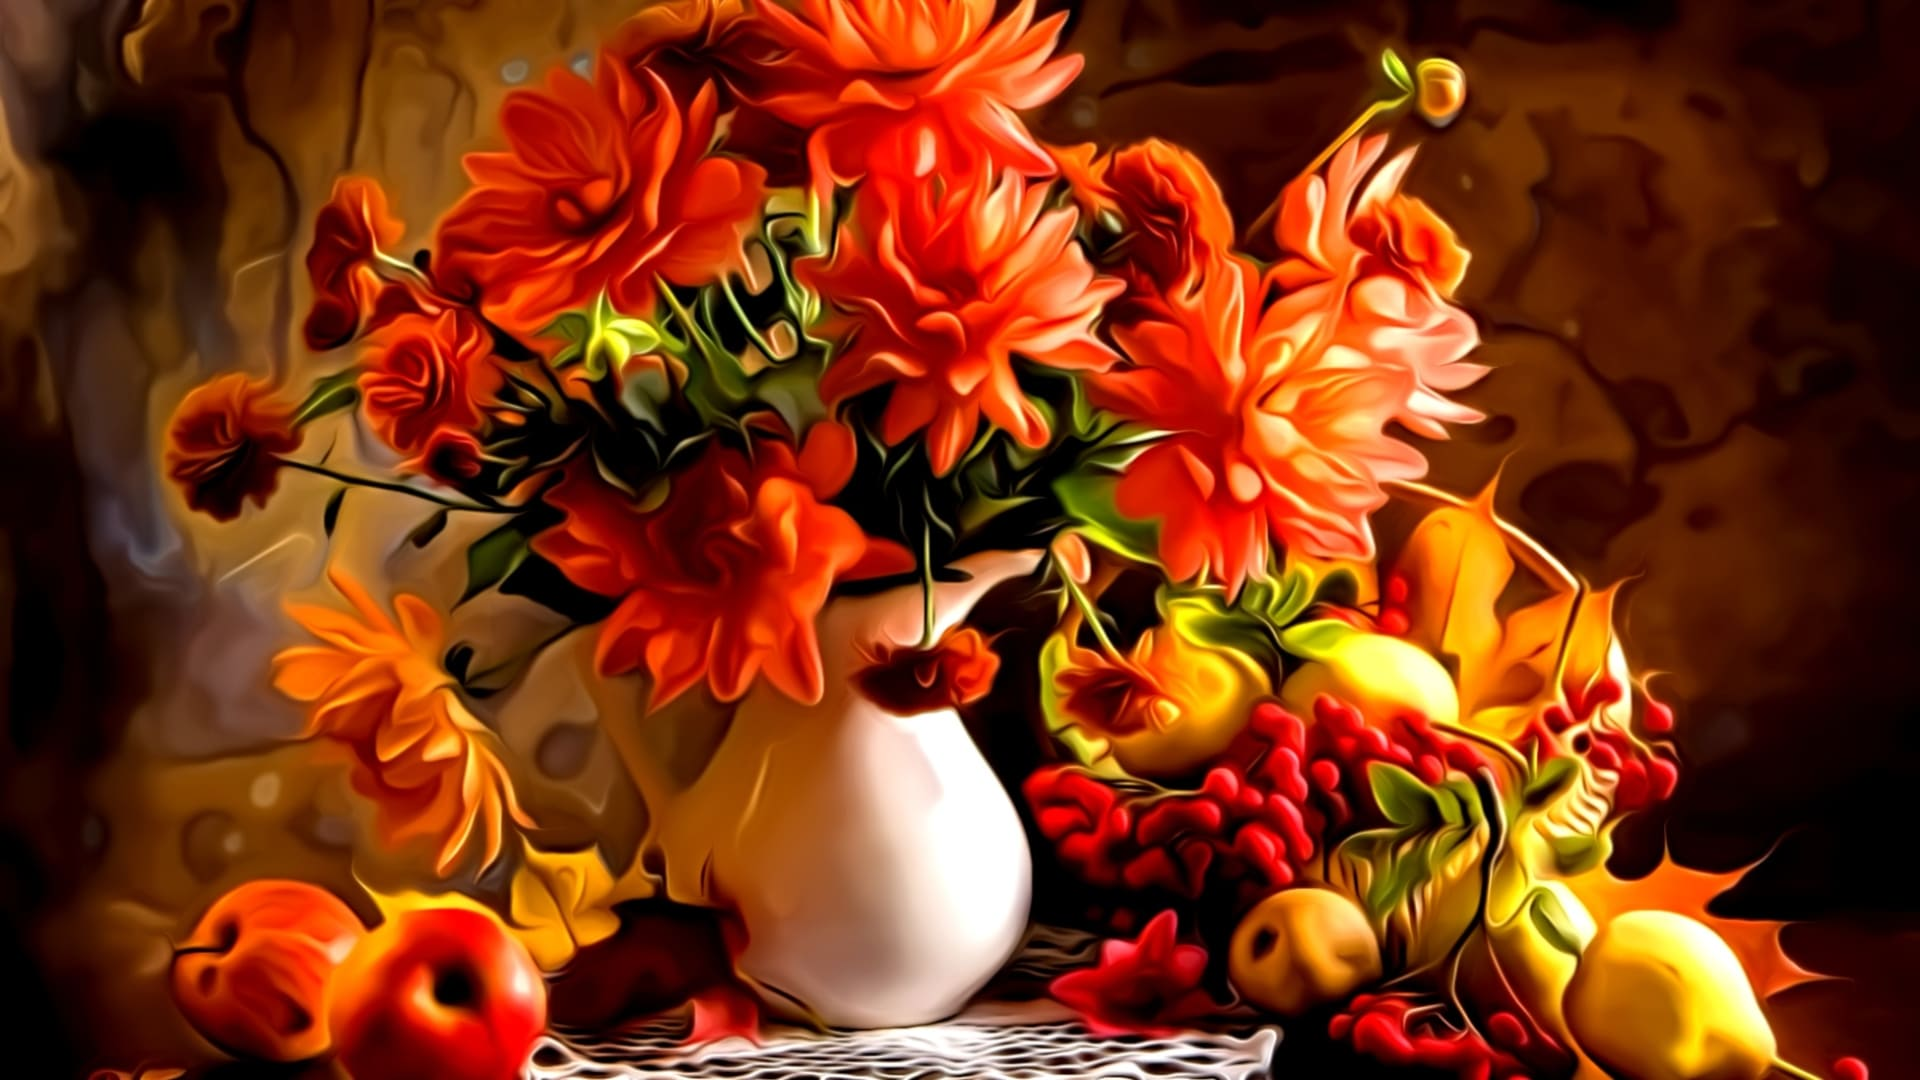 Fall flower pictures